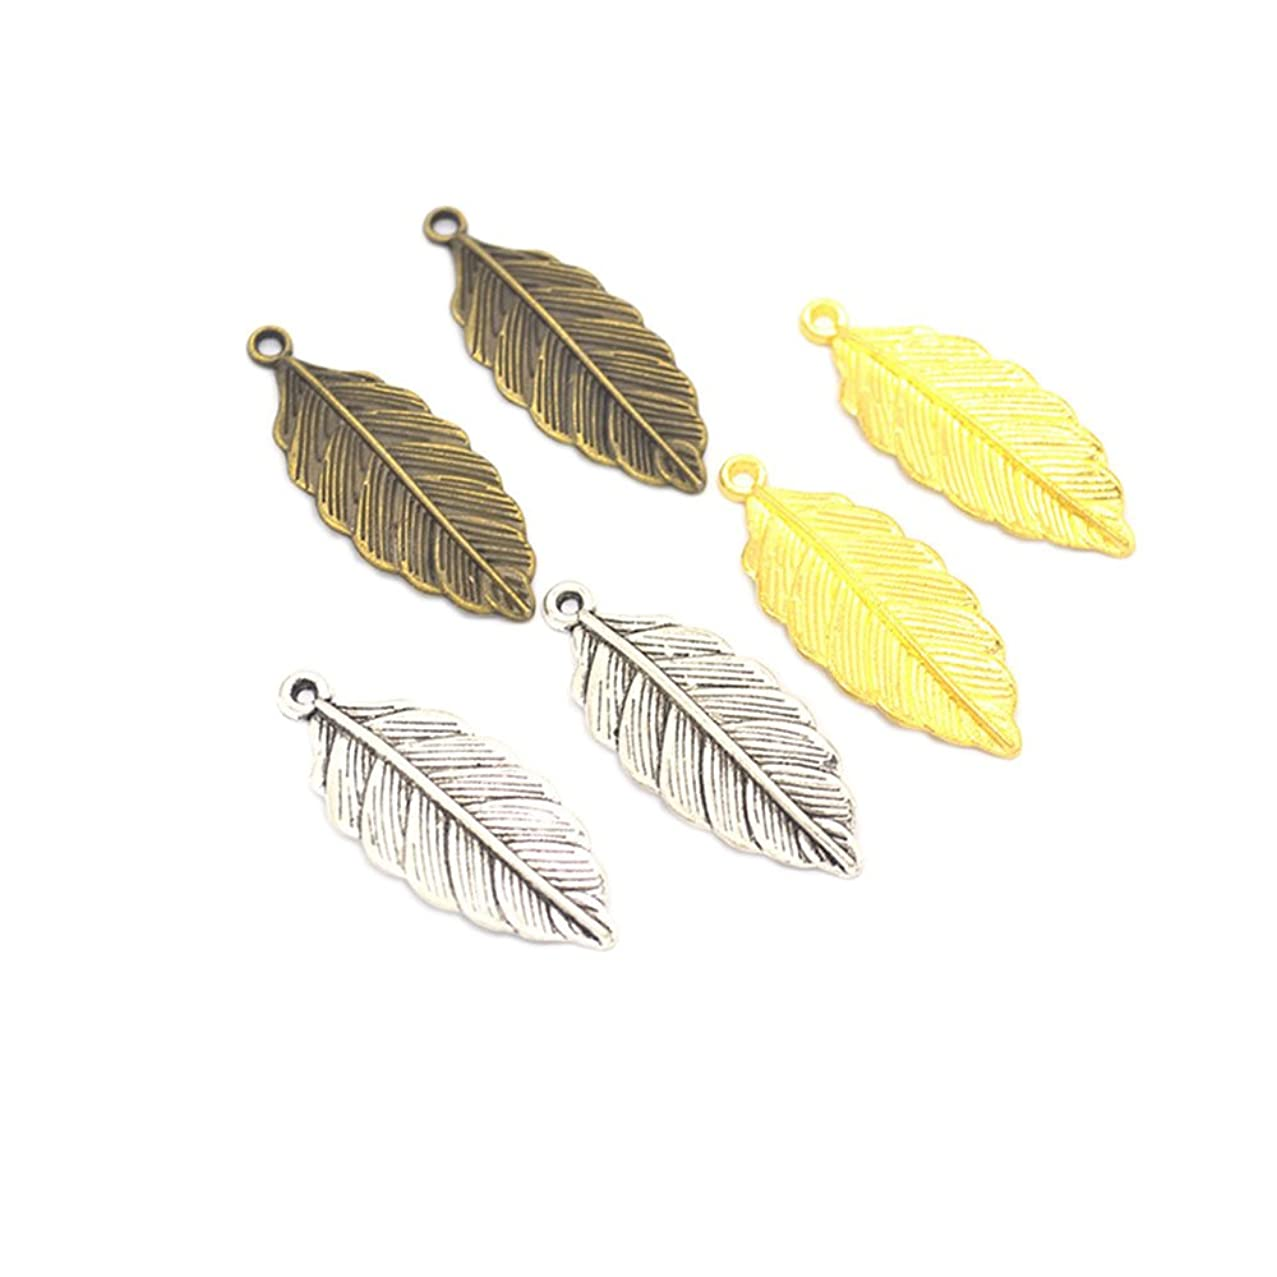 90pcs Mixed Antique Silver Alloy Leaf Charms Pendents Jewelry Findings for Making Bracelet and Necklace (90pcs)